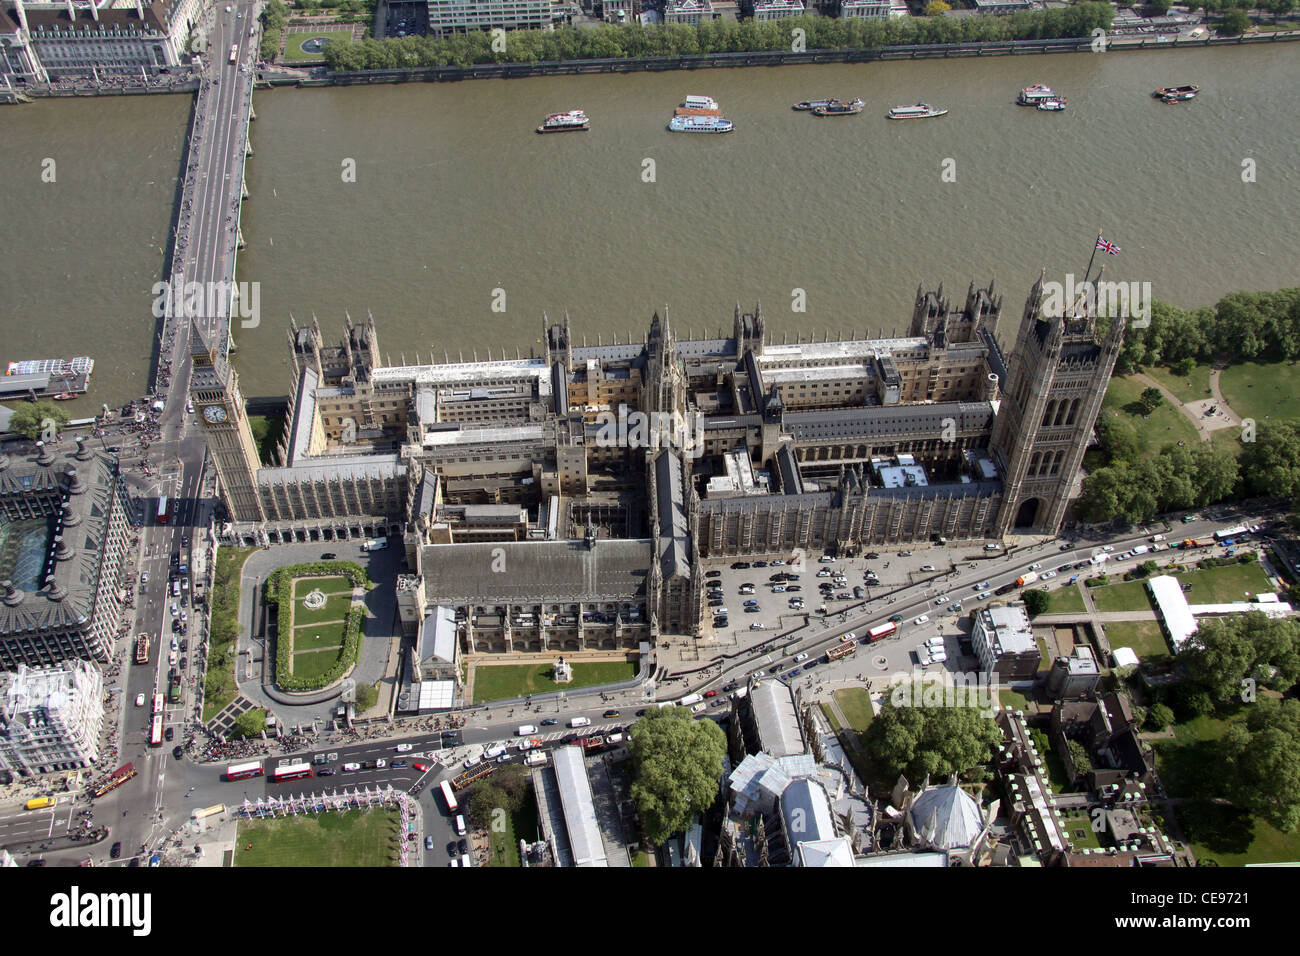 Aerial image of The Houses of Parliament, London SW1 - Stock Image